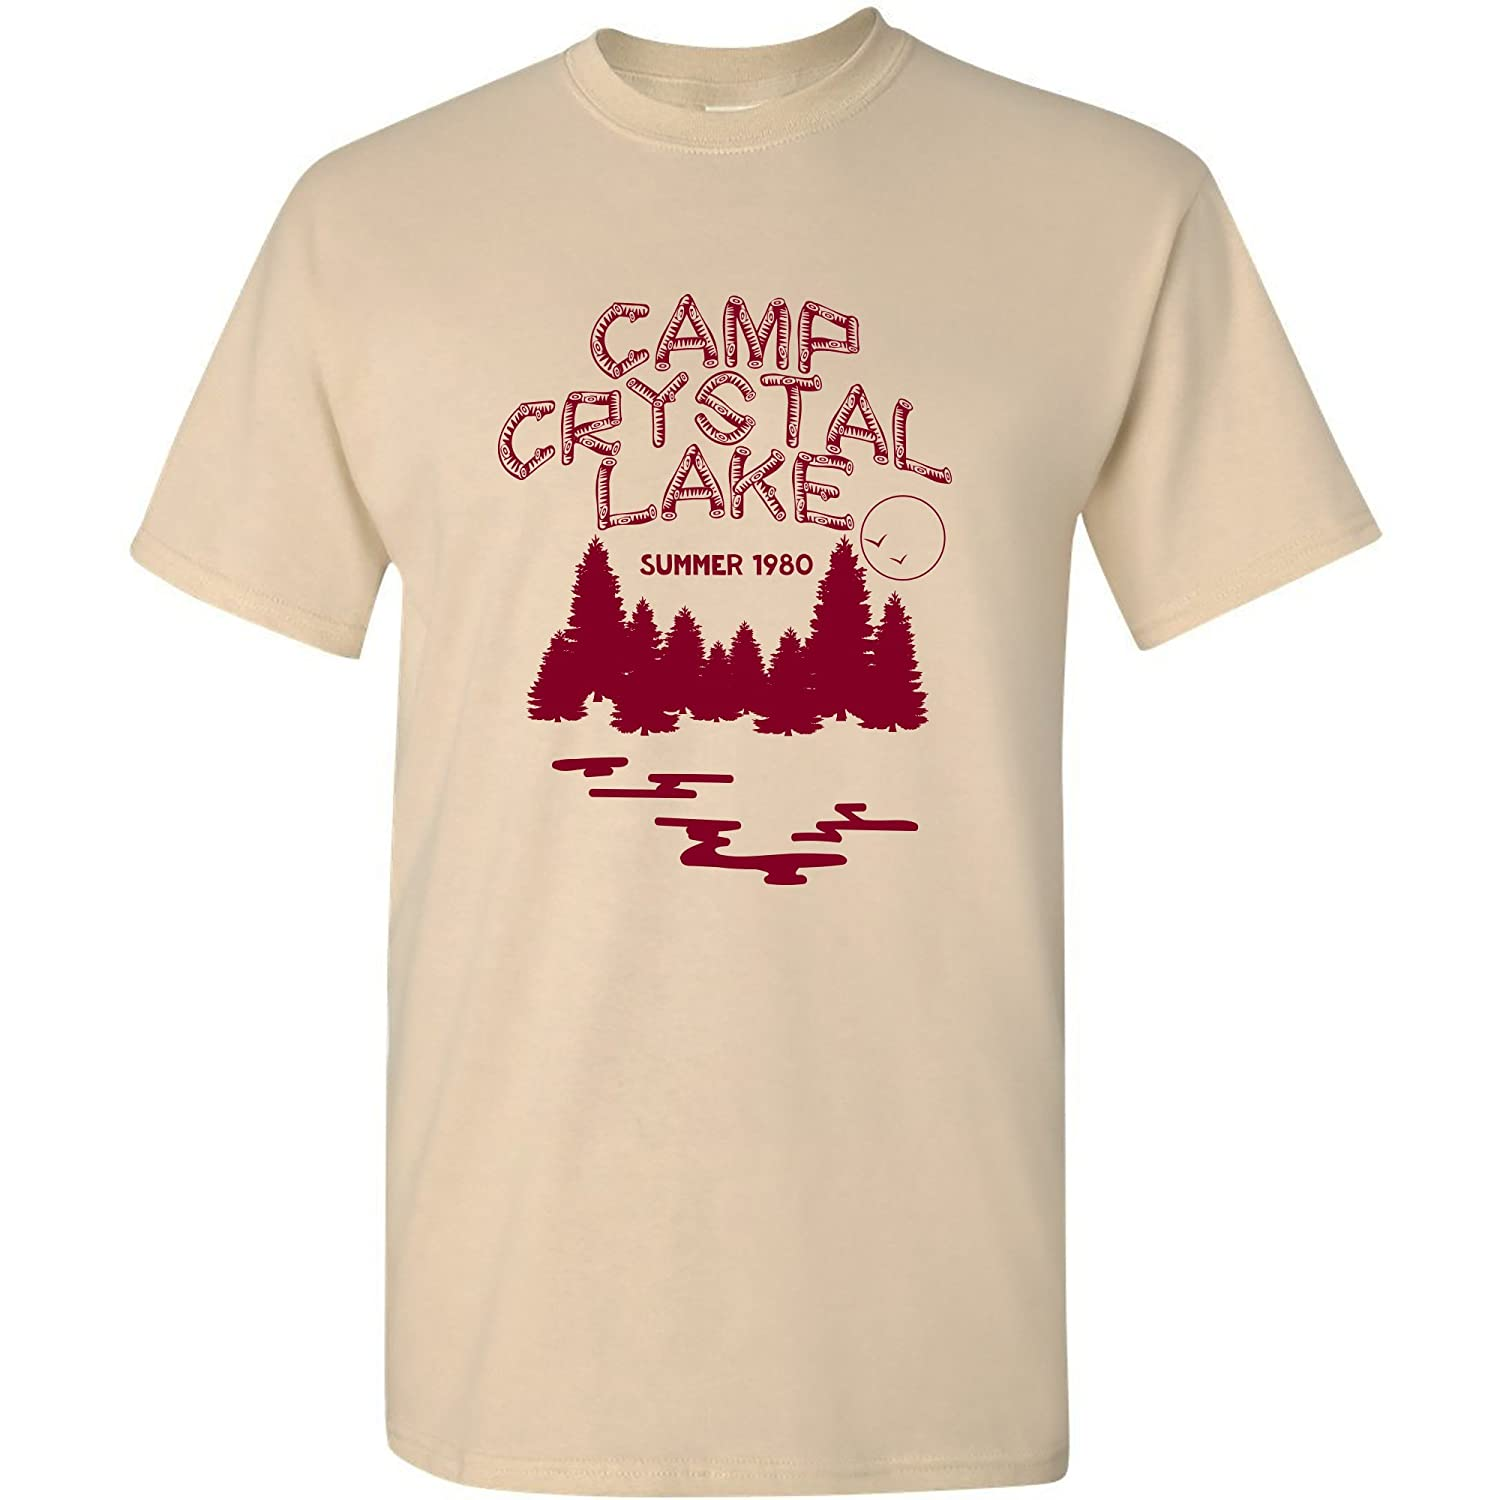 efa565c9c Amazon.com: UGP Campus Apparel Camp Crystal Lake - Funny 80s Horror Movie  Halloween T Shirt: Clothing